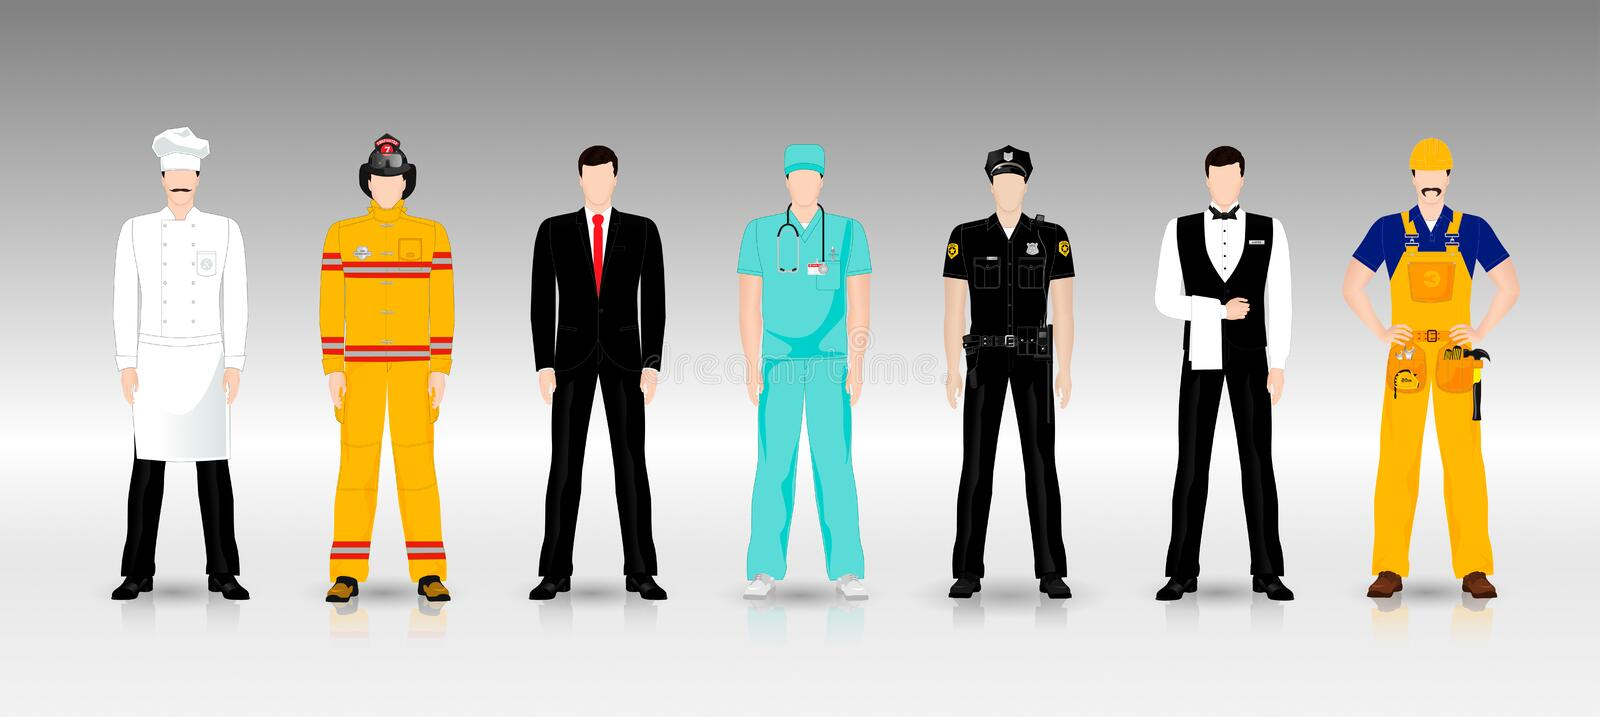 People of different professions in working clothes stock illustration